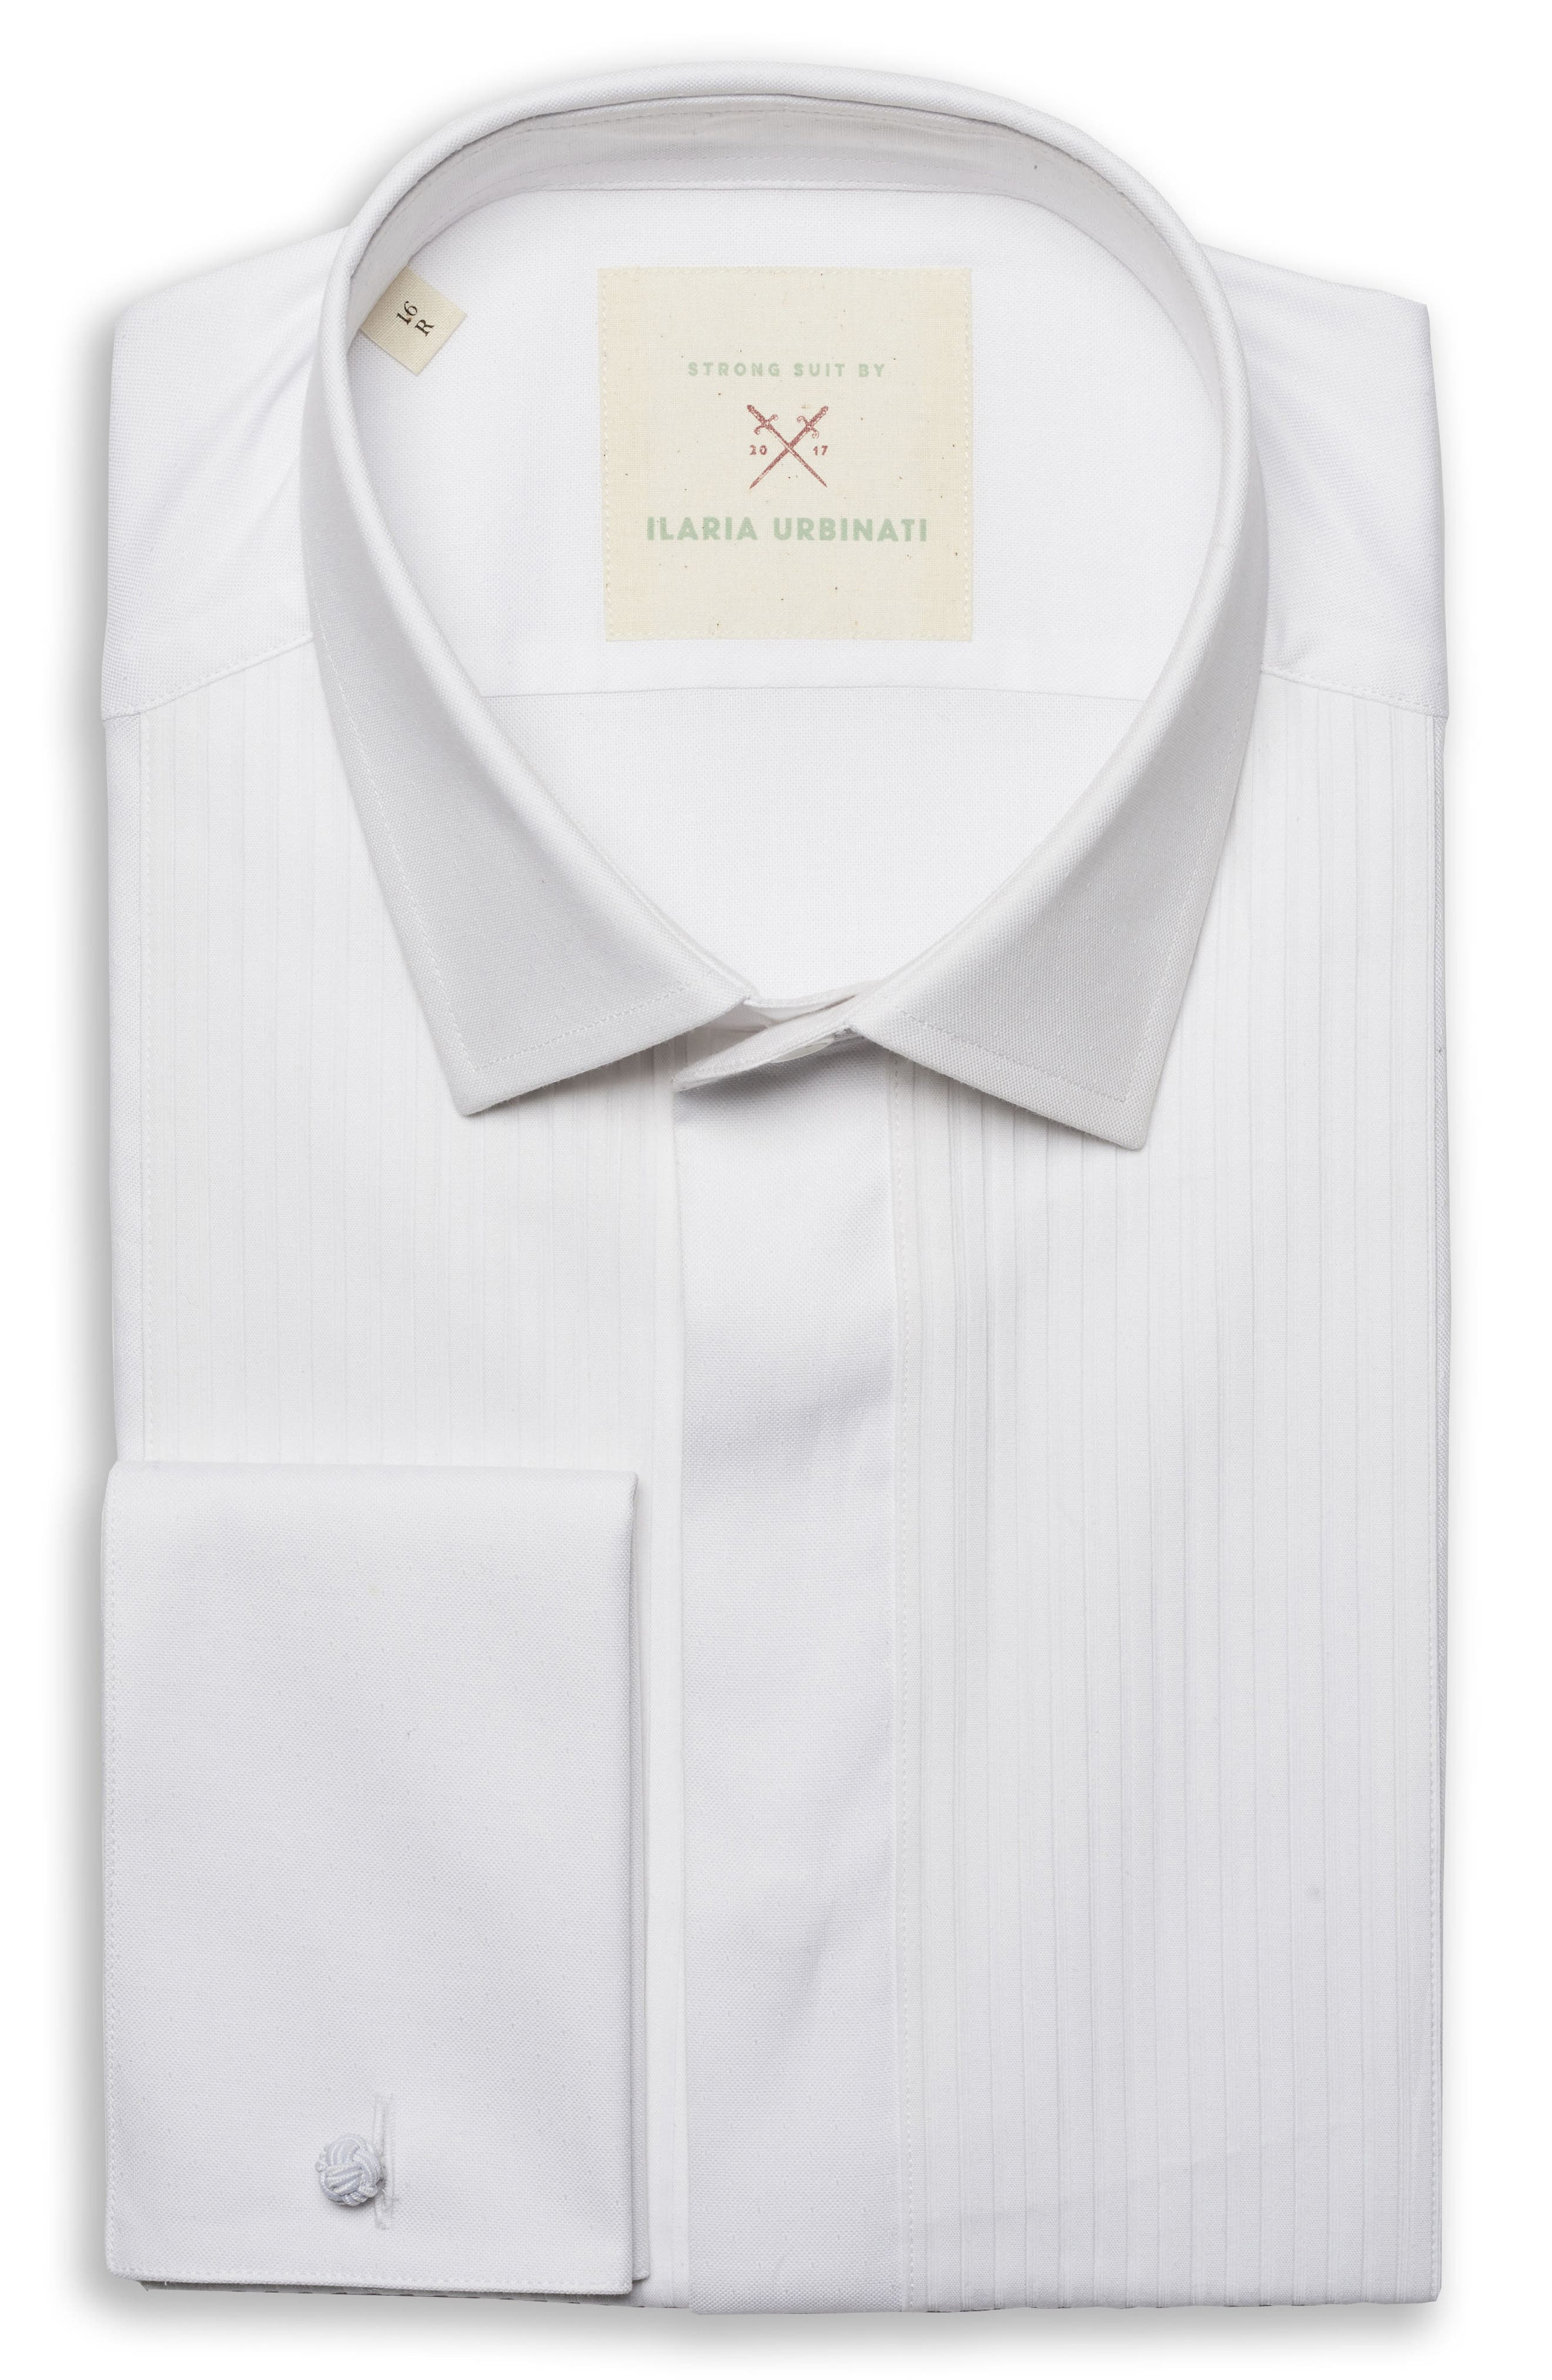 Strong Suit by Ilaria Urbinati Slim Fit Tuxedo Shirt (Nordstrom Exclusive)